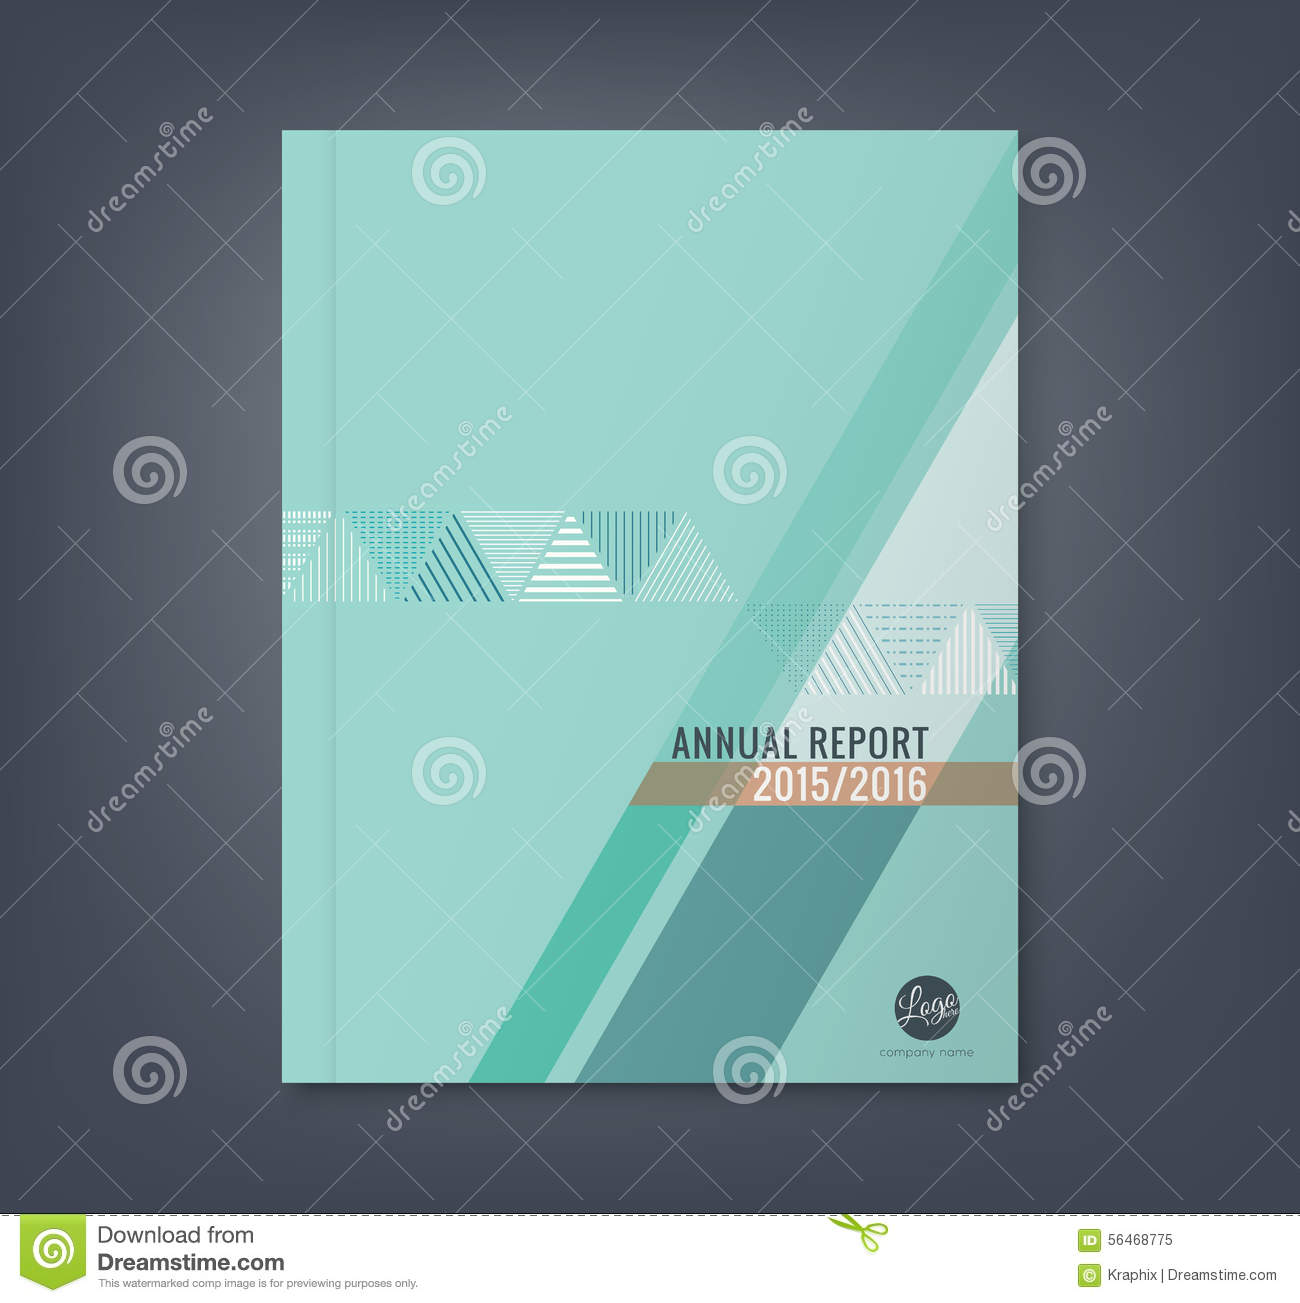 Book Cover Background Examples ~ Abstract triangle stripe shape background for business annual